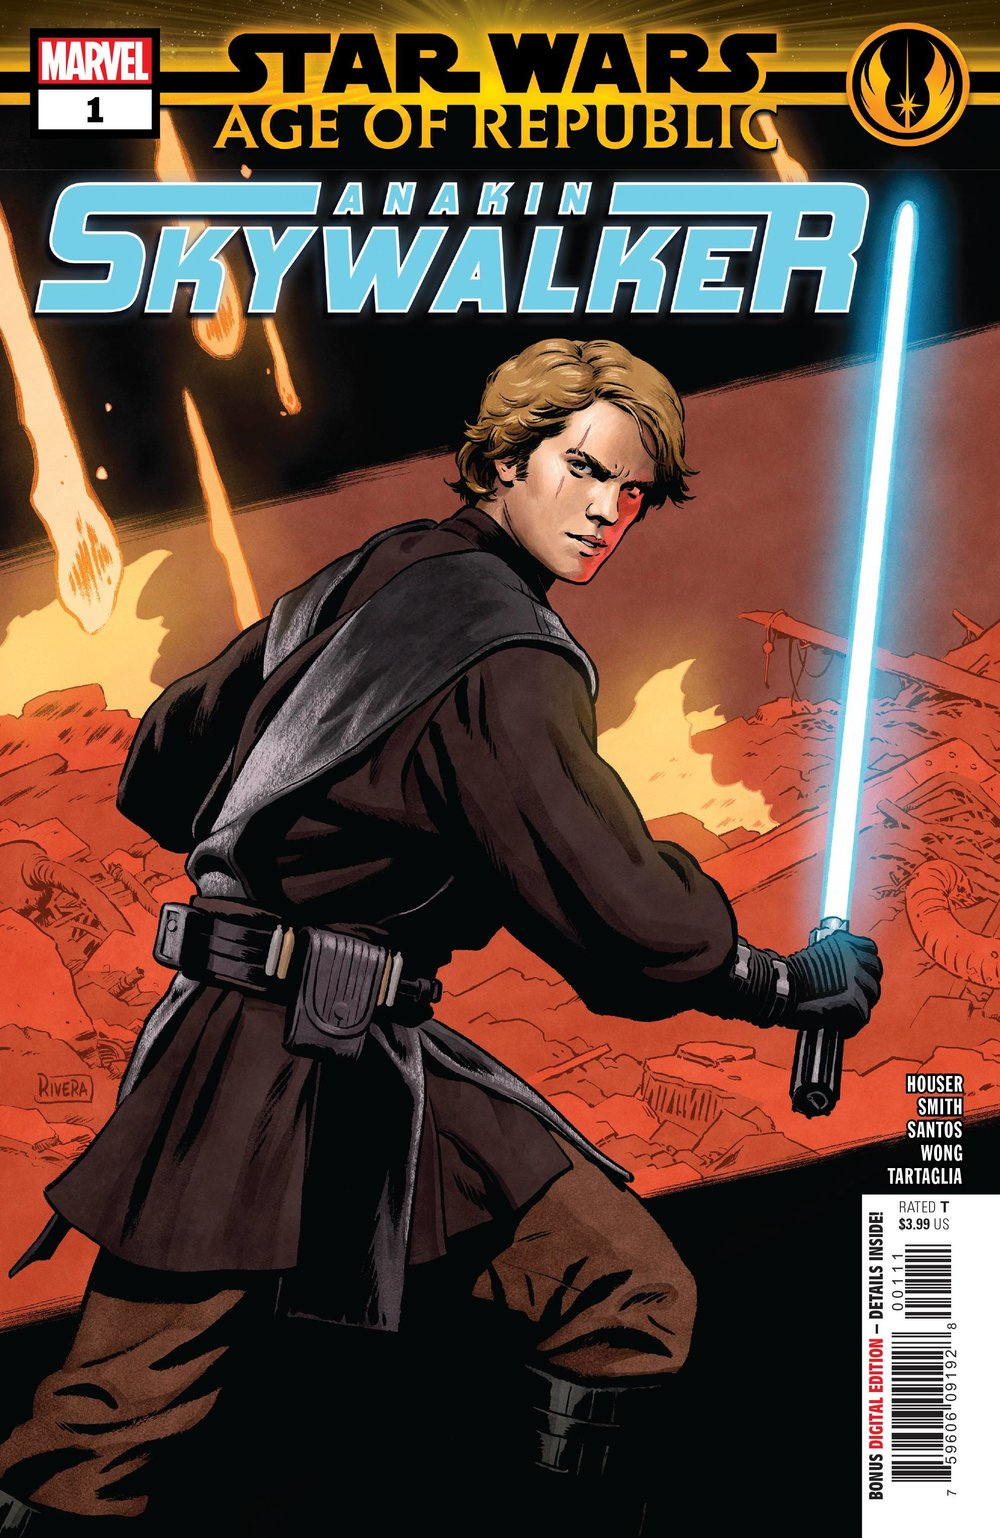 STAR WARS AOR ANAKIN SKYWALKER 1.jpg